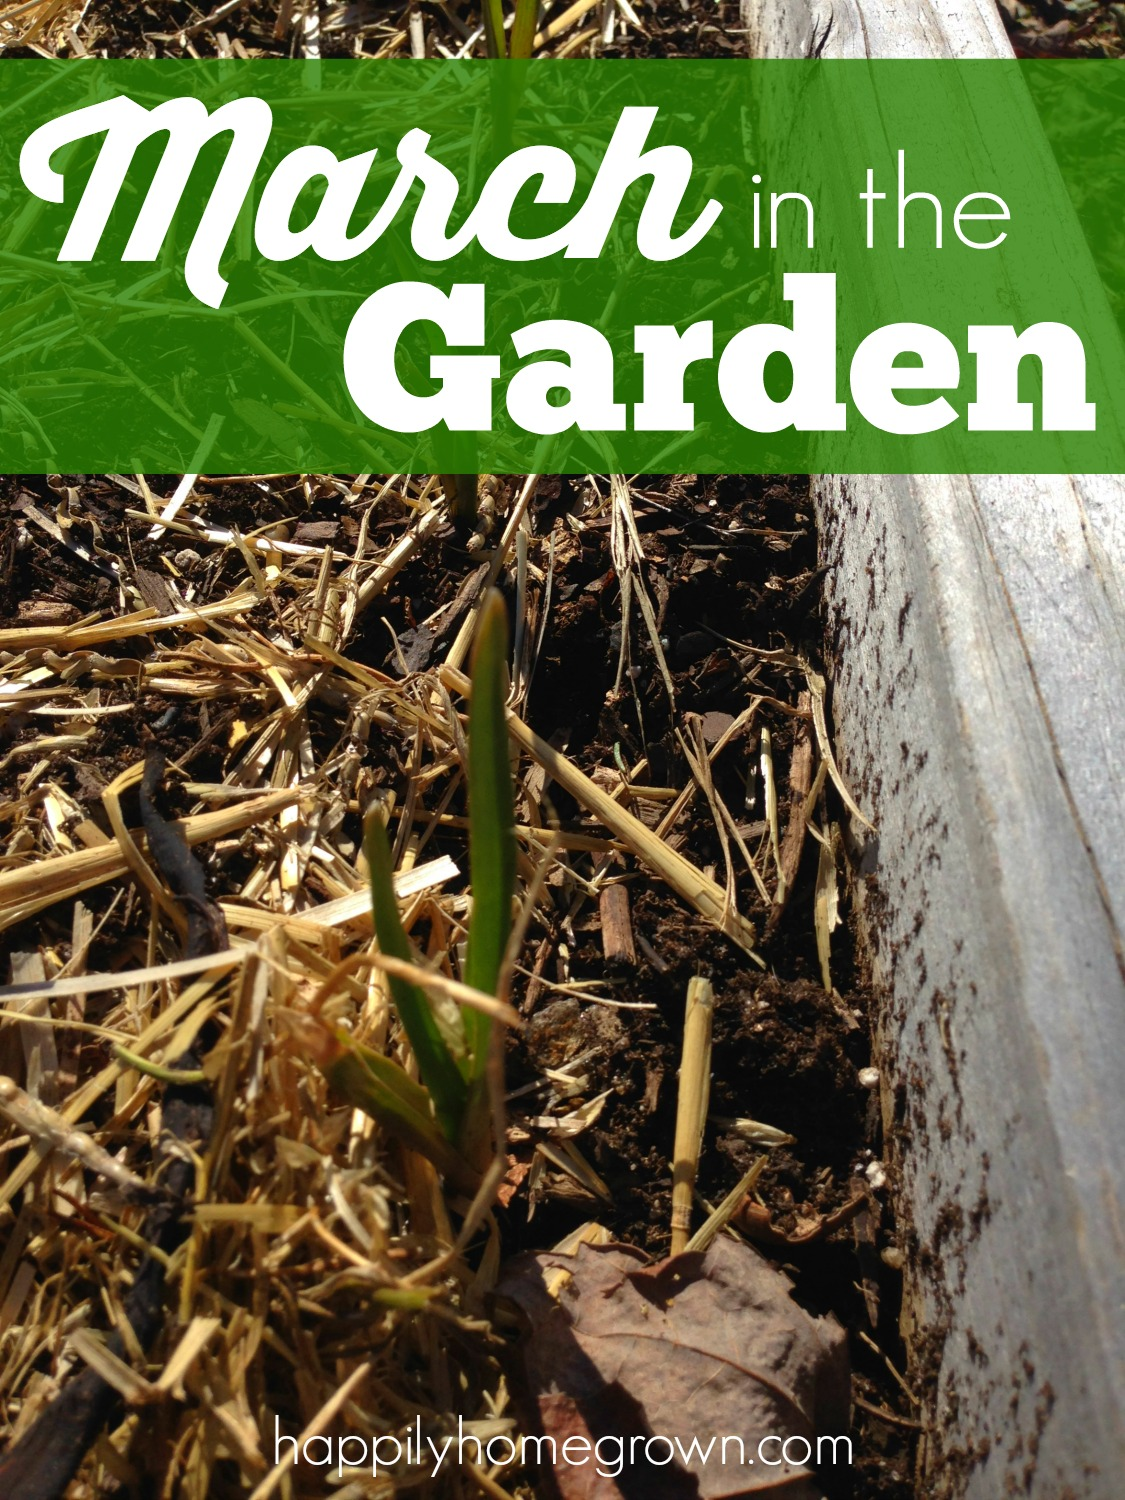 March in the Garden is a busy time. Beds need to be prepped, seeds started, trees pruned, and there is even stuff you can plant directly in the ground!